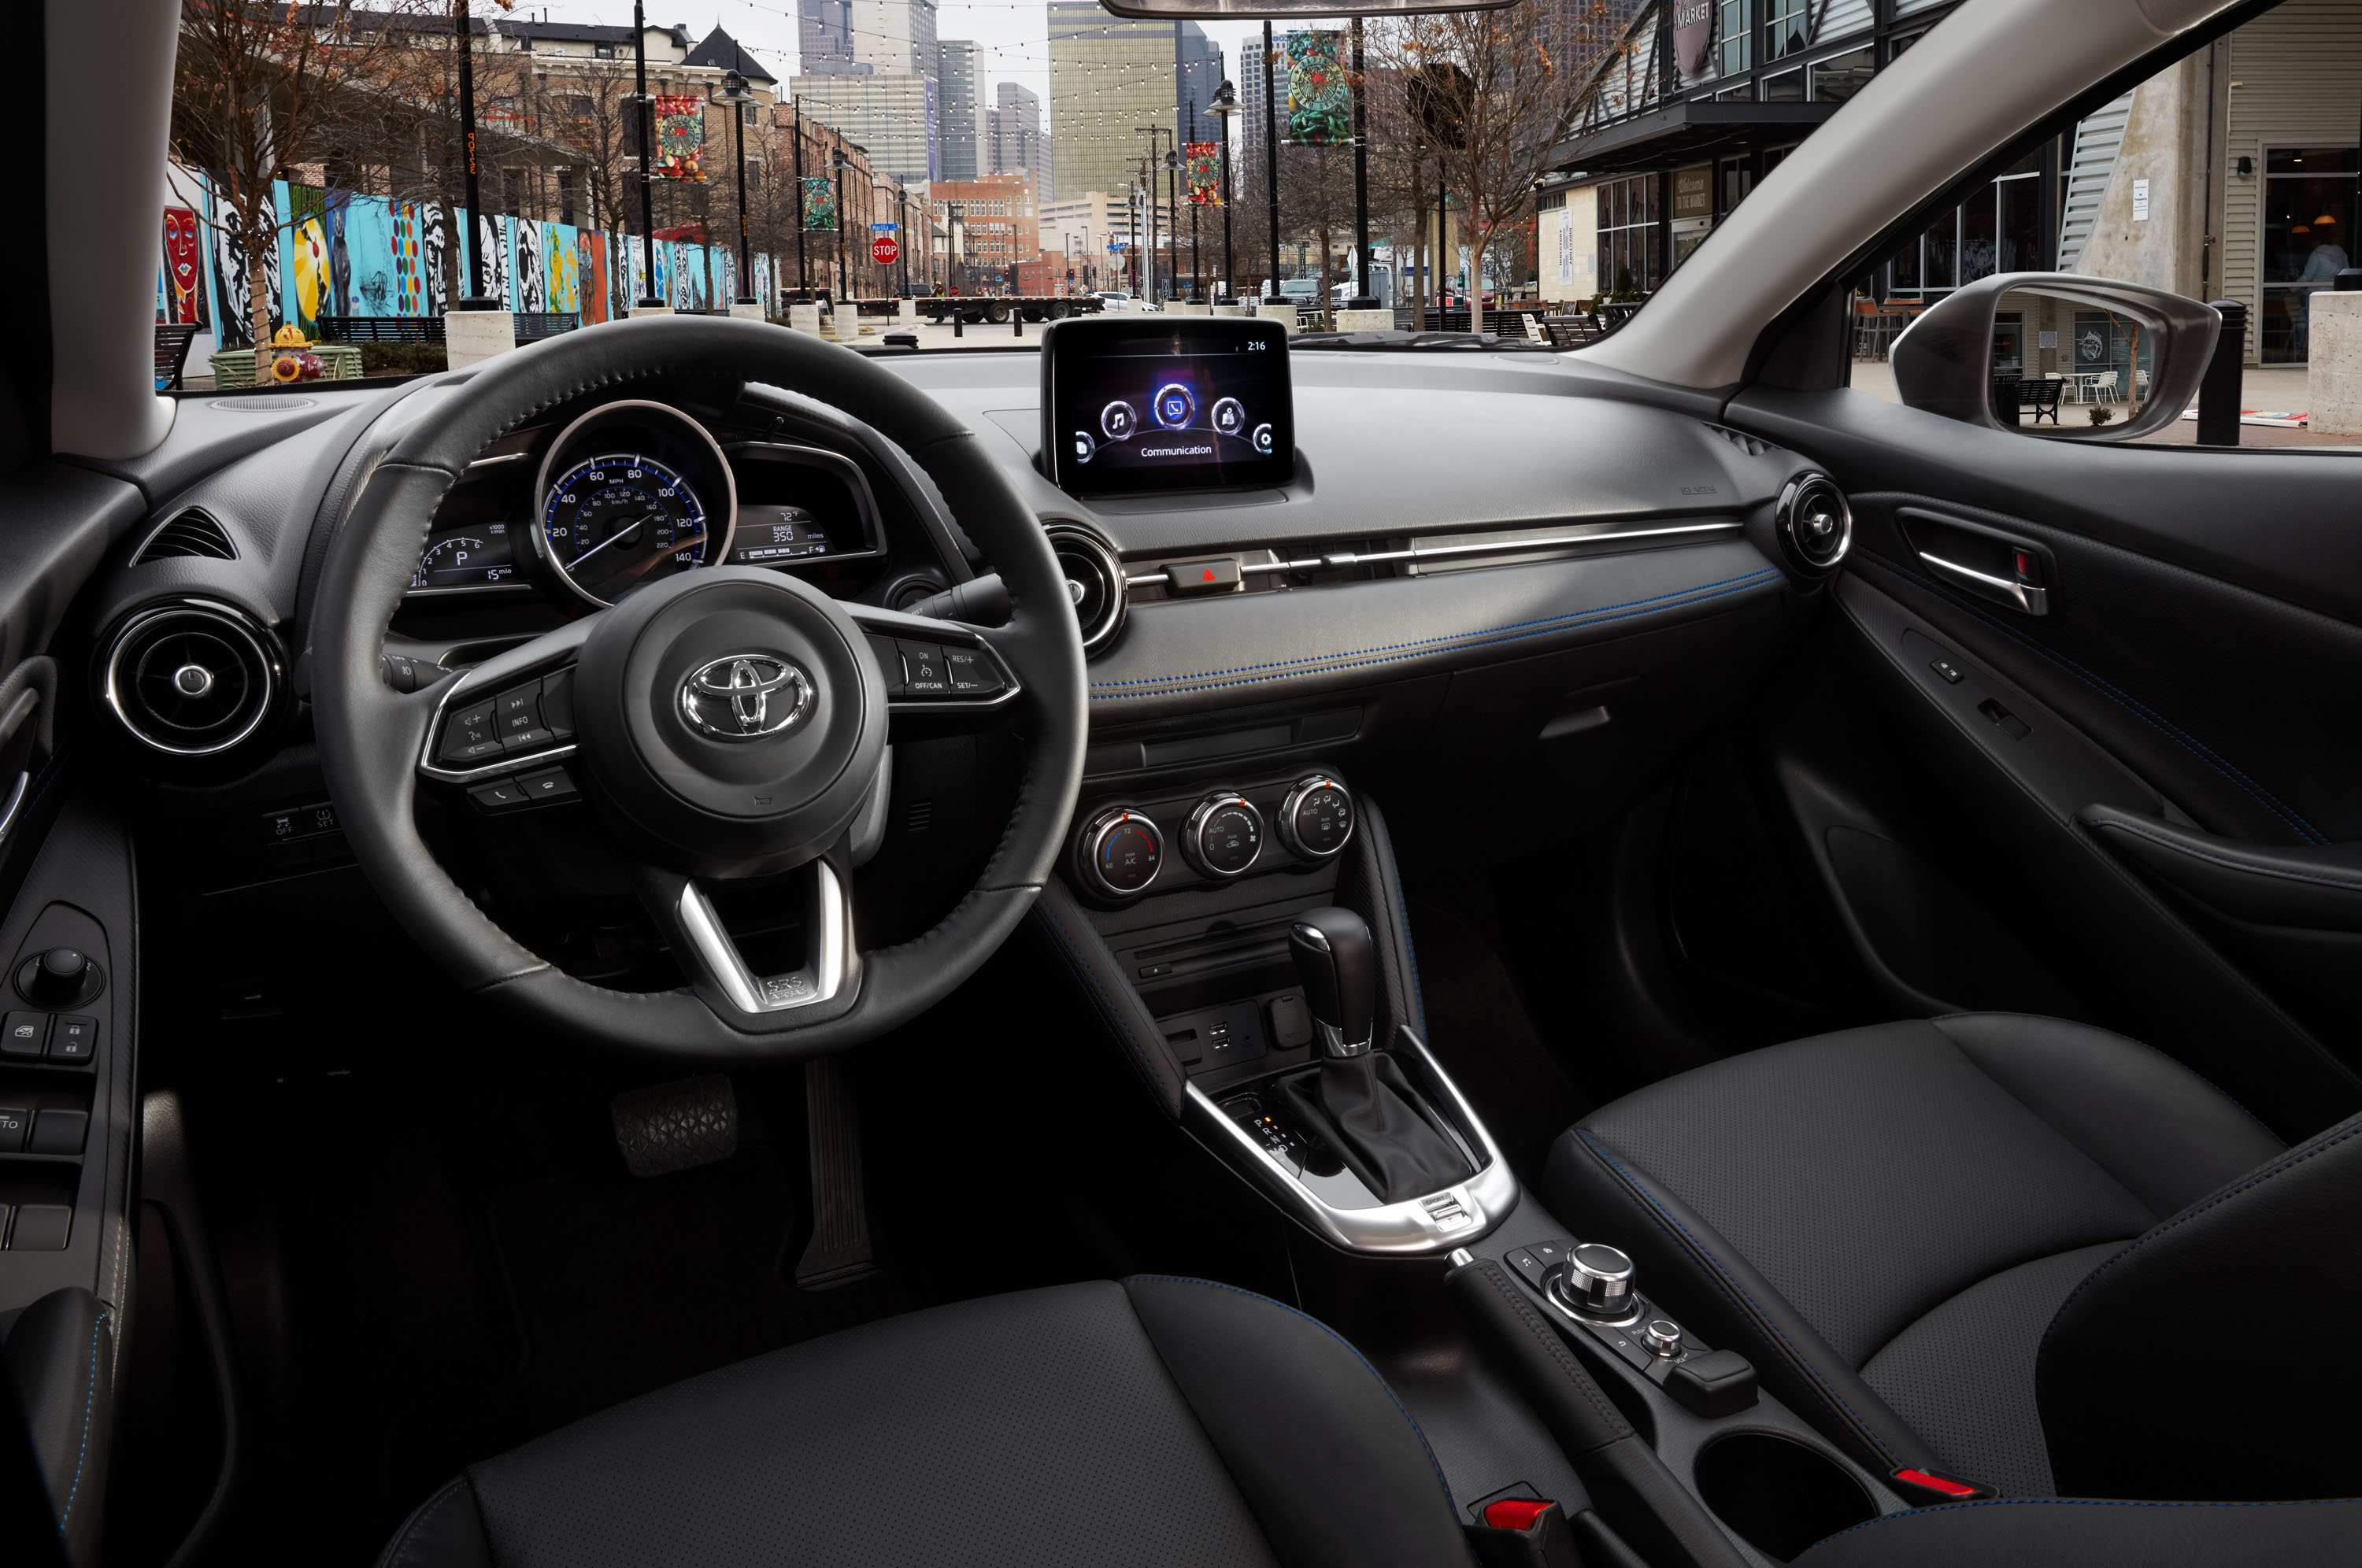 28 New Toyota Yaris 2019 Interior Engine